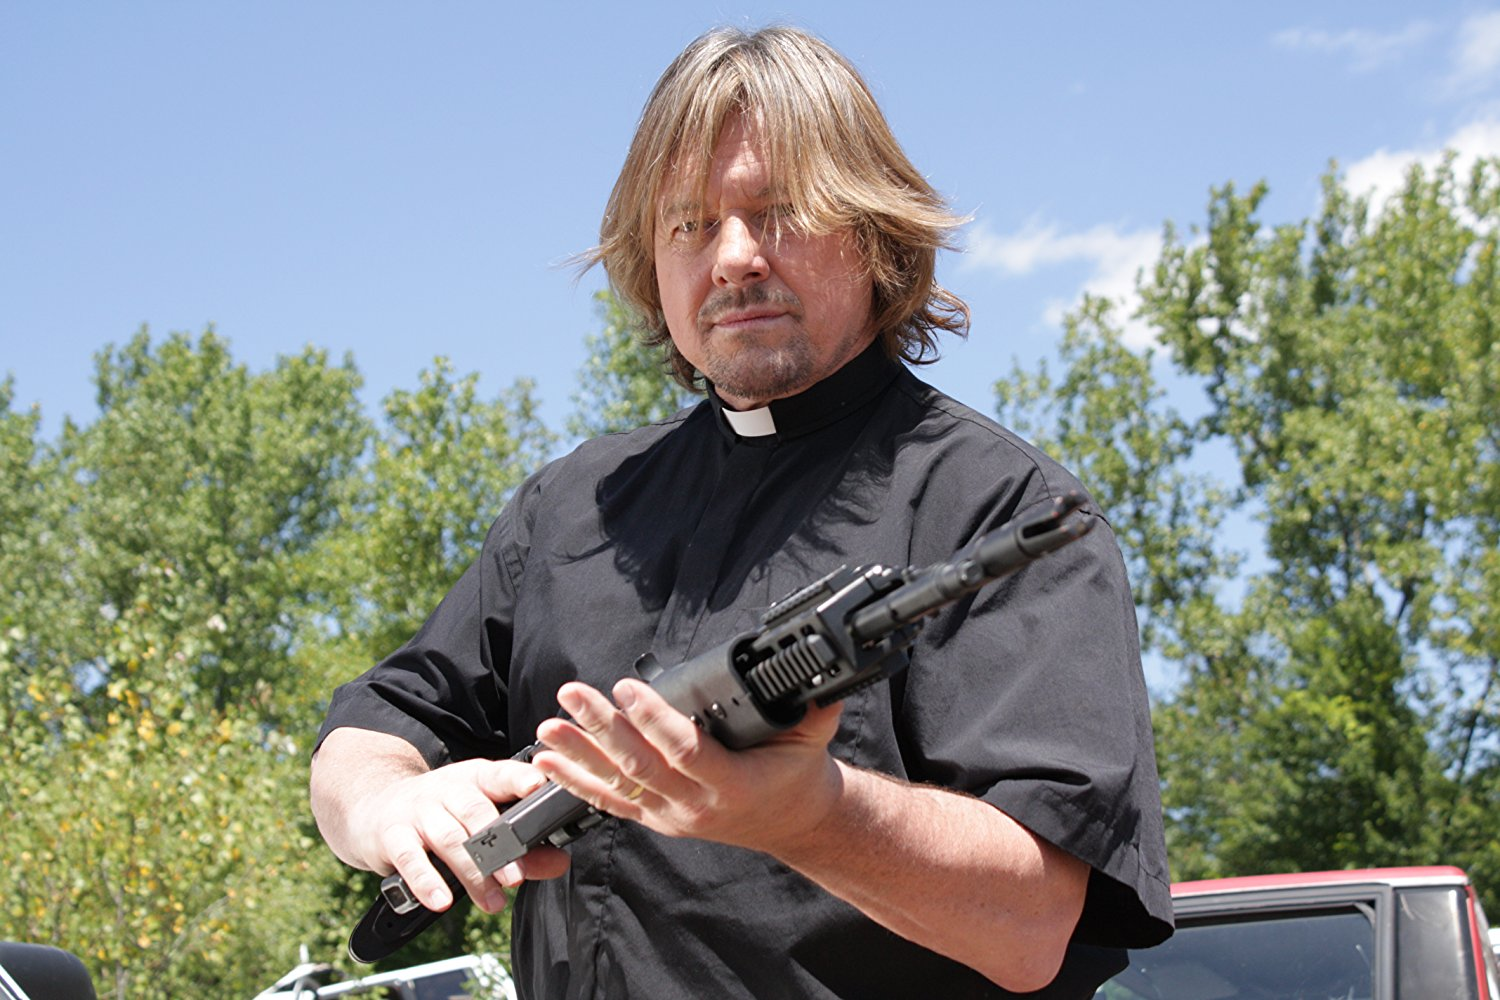 Roddy Piper as Father Melluzzo in Alien Opponent (2011)